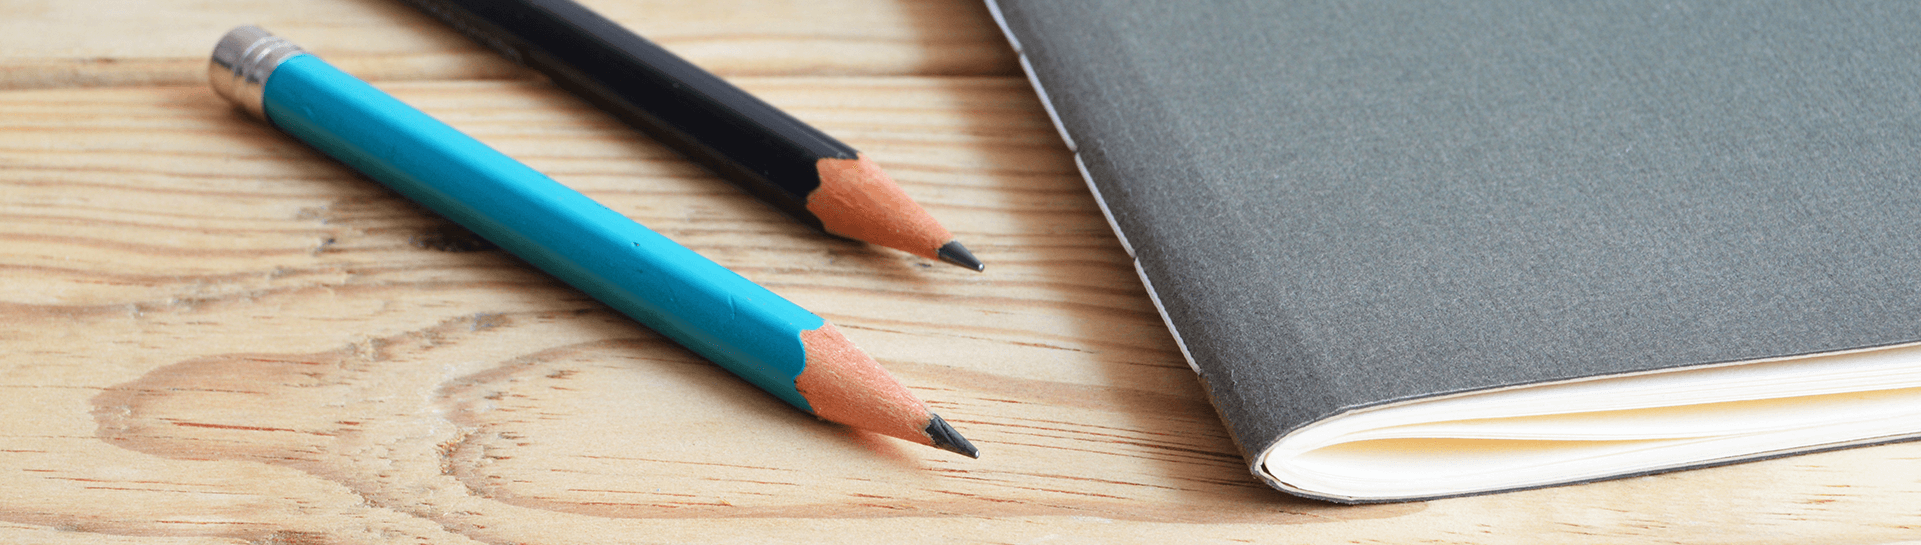 Pencils next to a notebook